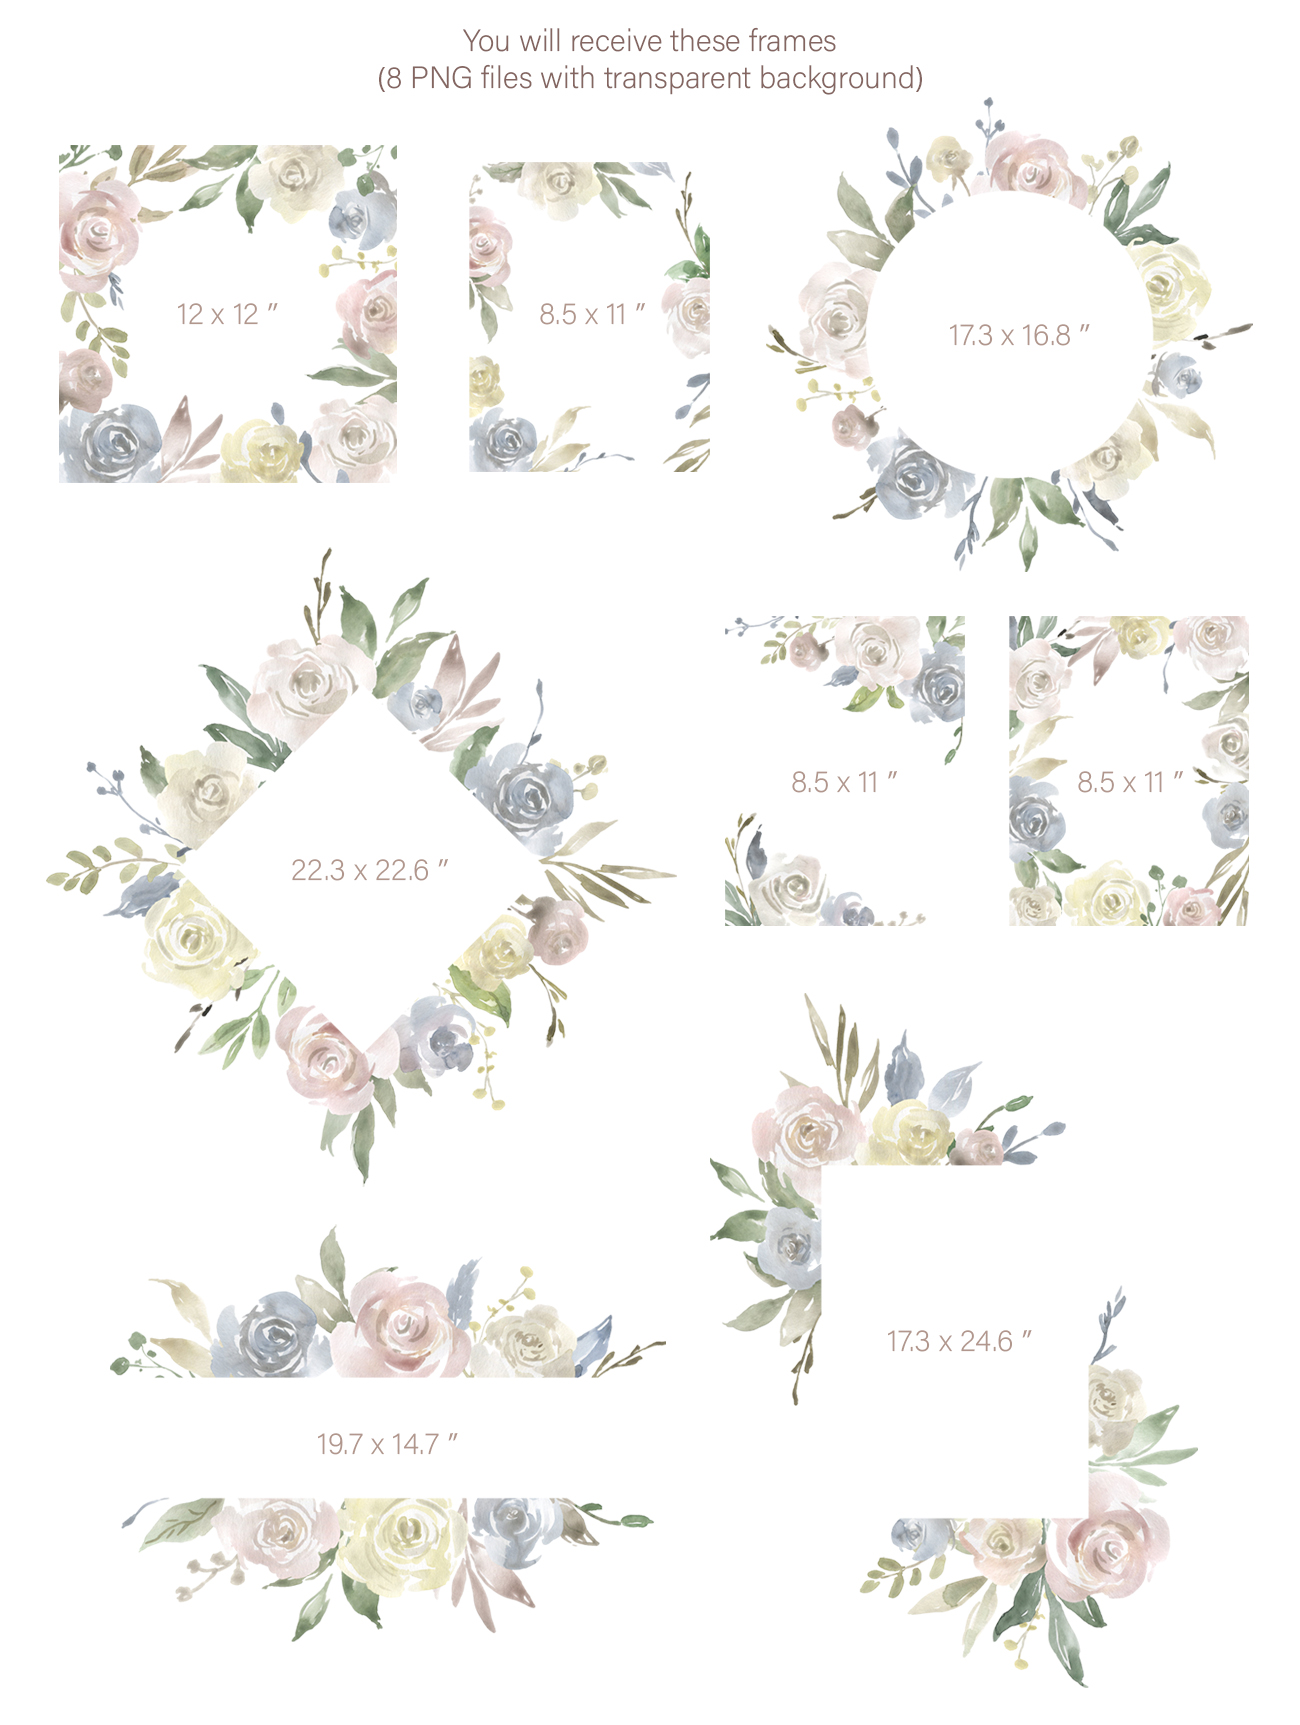 Watercolor Flowers, Bouquets, Frames Light PNG Clipart example image 4